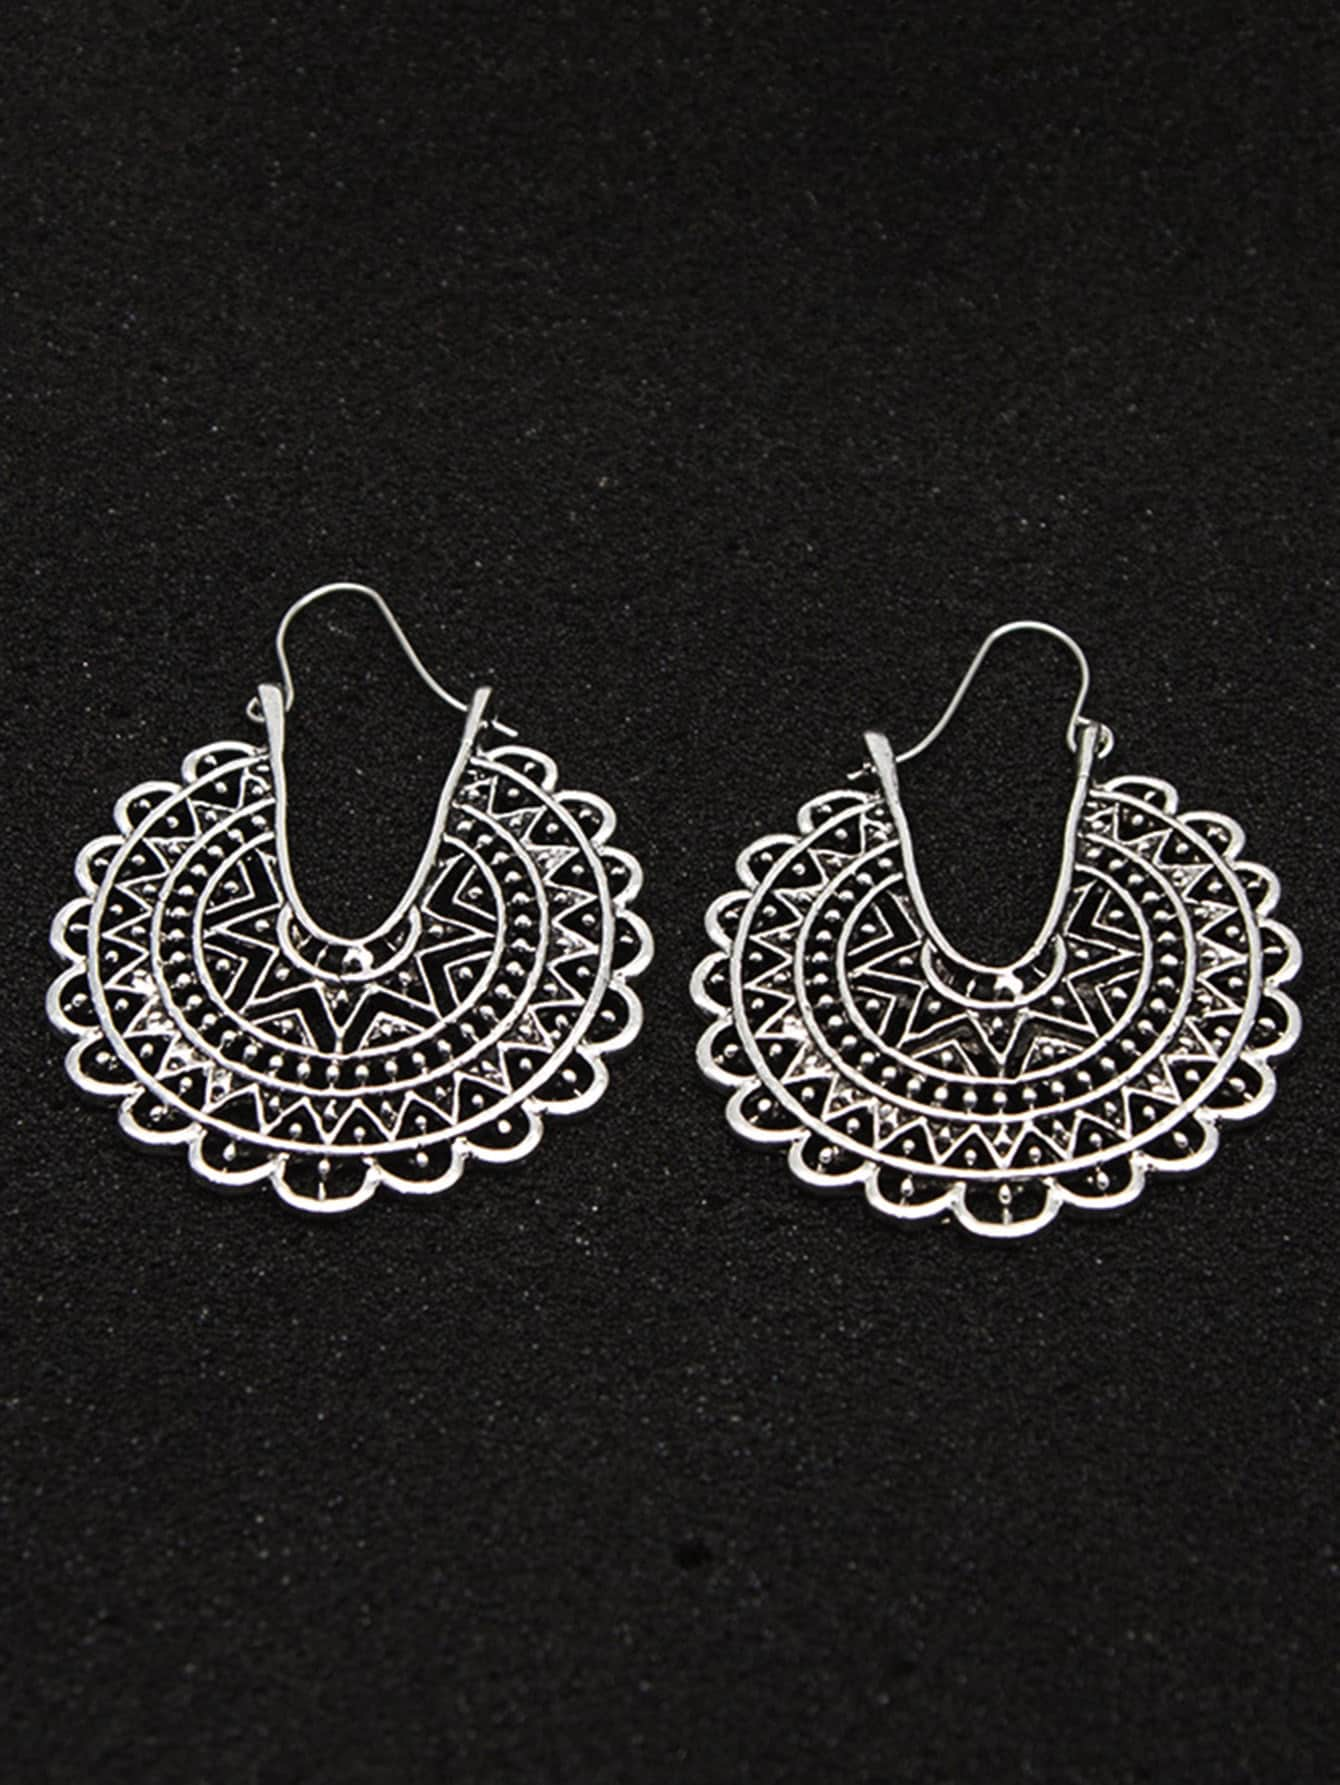 Hollow Out Statement Earrings 1pair